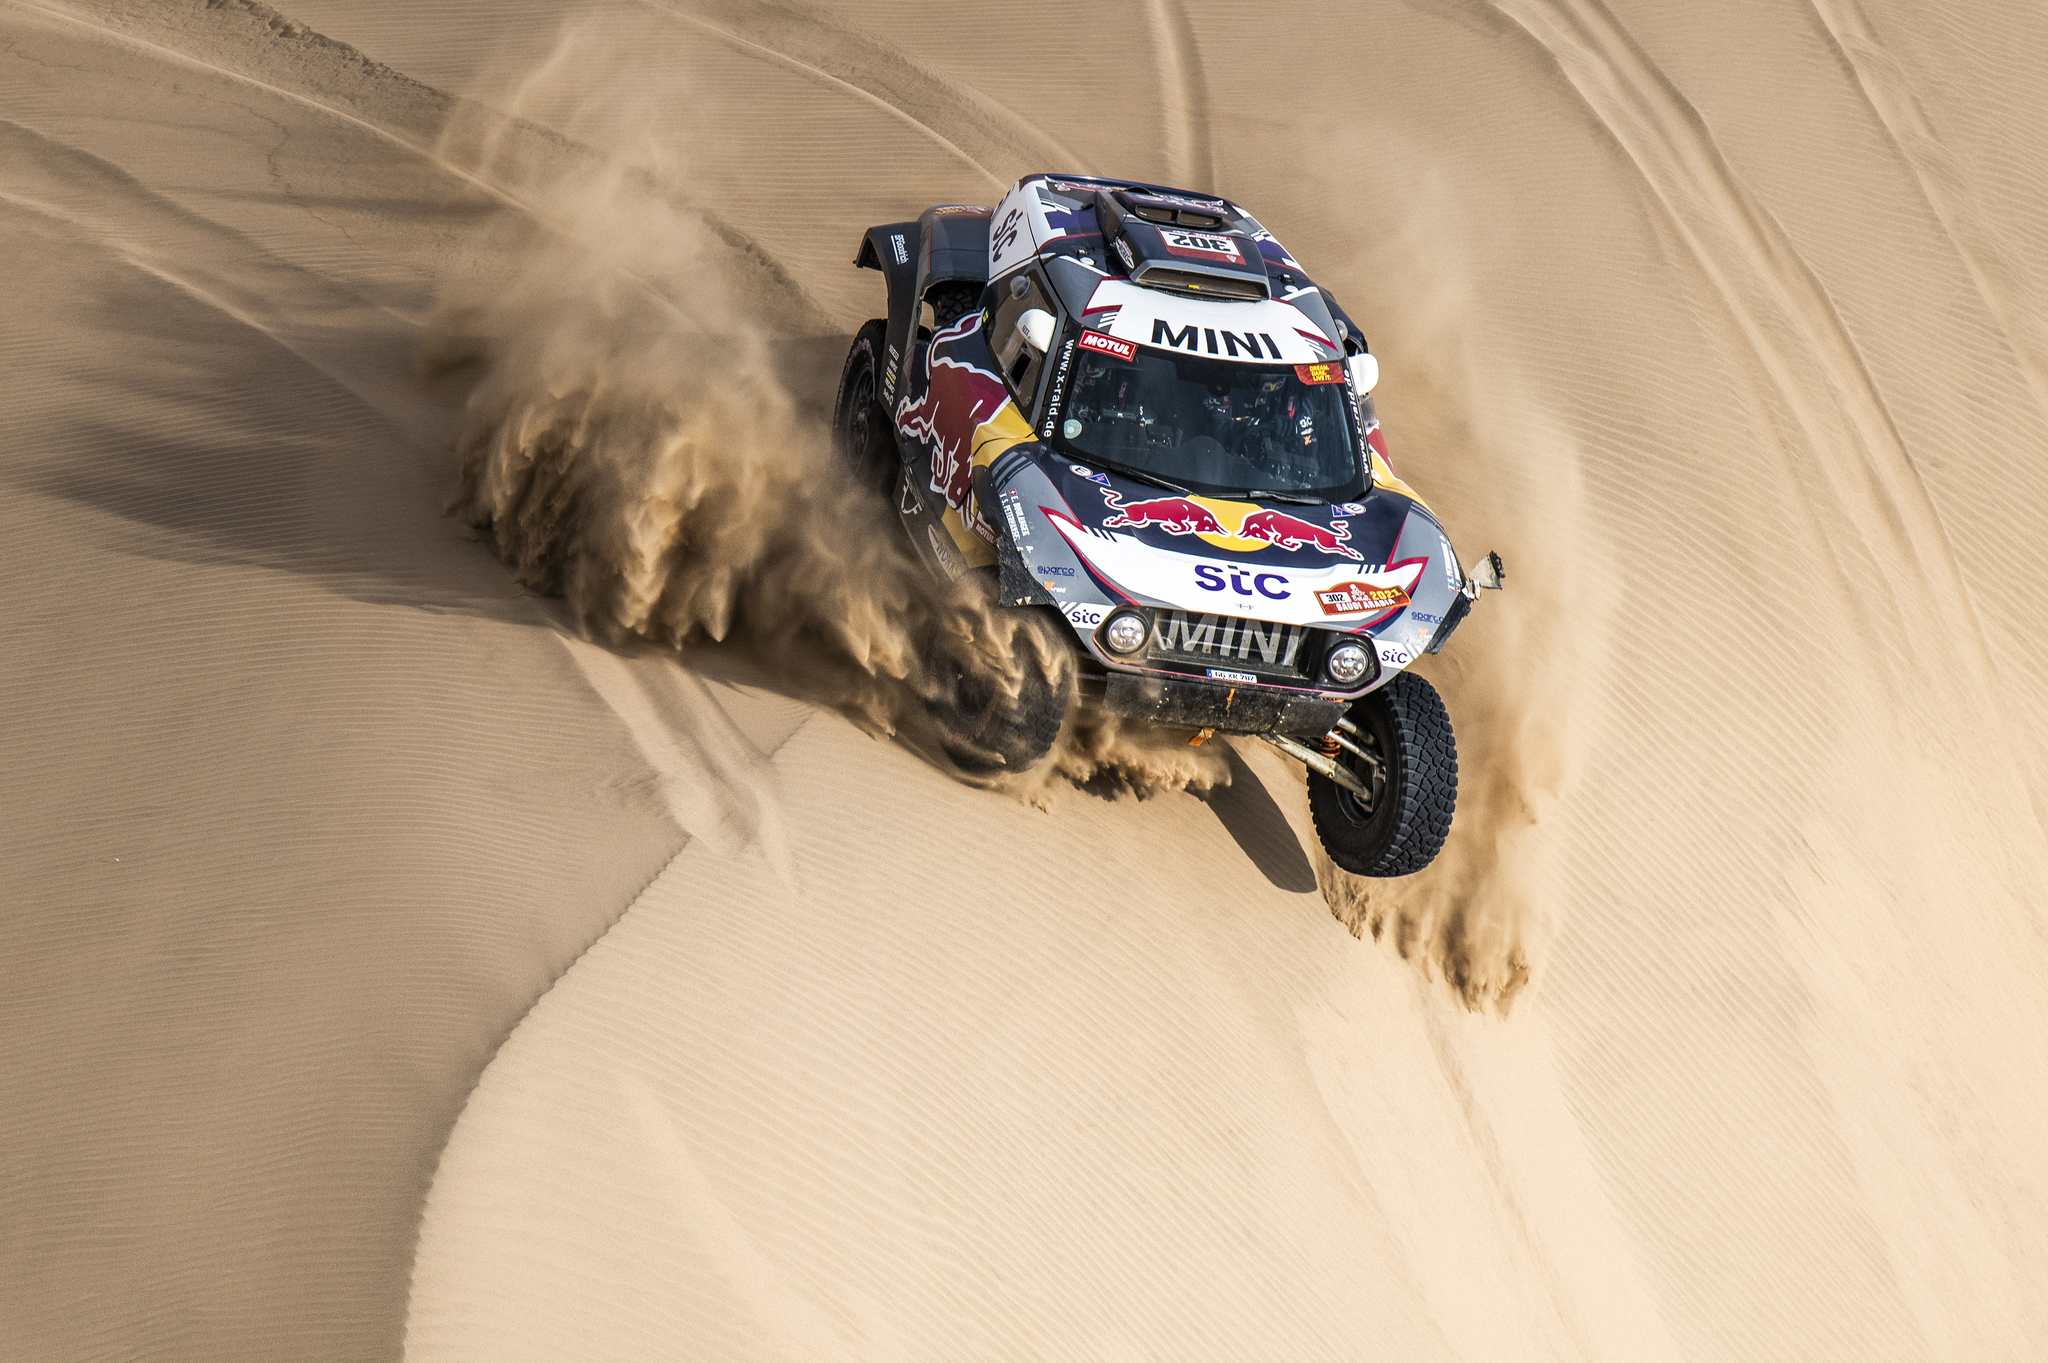 302 lt;HIT gt;Peterhansel lt;/HIT gt; Stephane (fra), Boulanger Edouard (fra), Mini, X-Raid Mini JCQ Team, Auto, action during the 11th stage of the Dakar 2021 between Al-'Ula and Yanbu, in Saudi Arabia on January 14, 2021 - Photo Charly Lopez / A.S.O